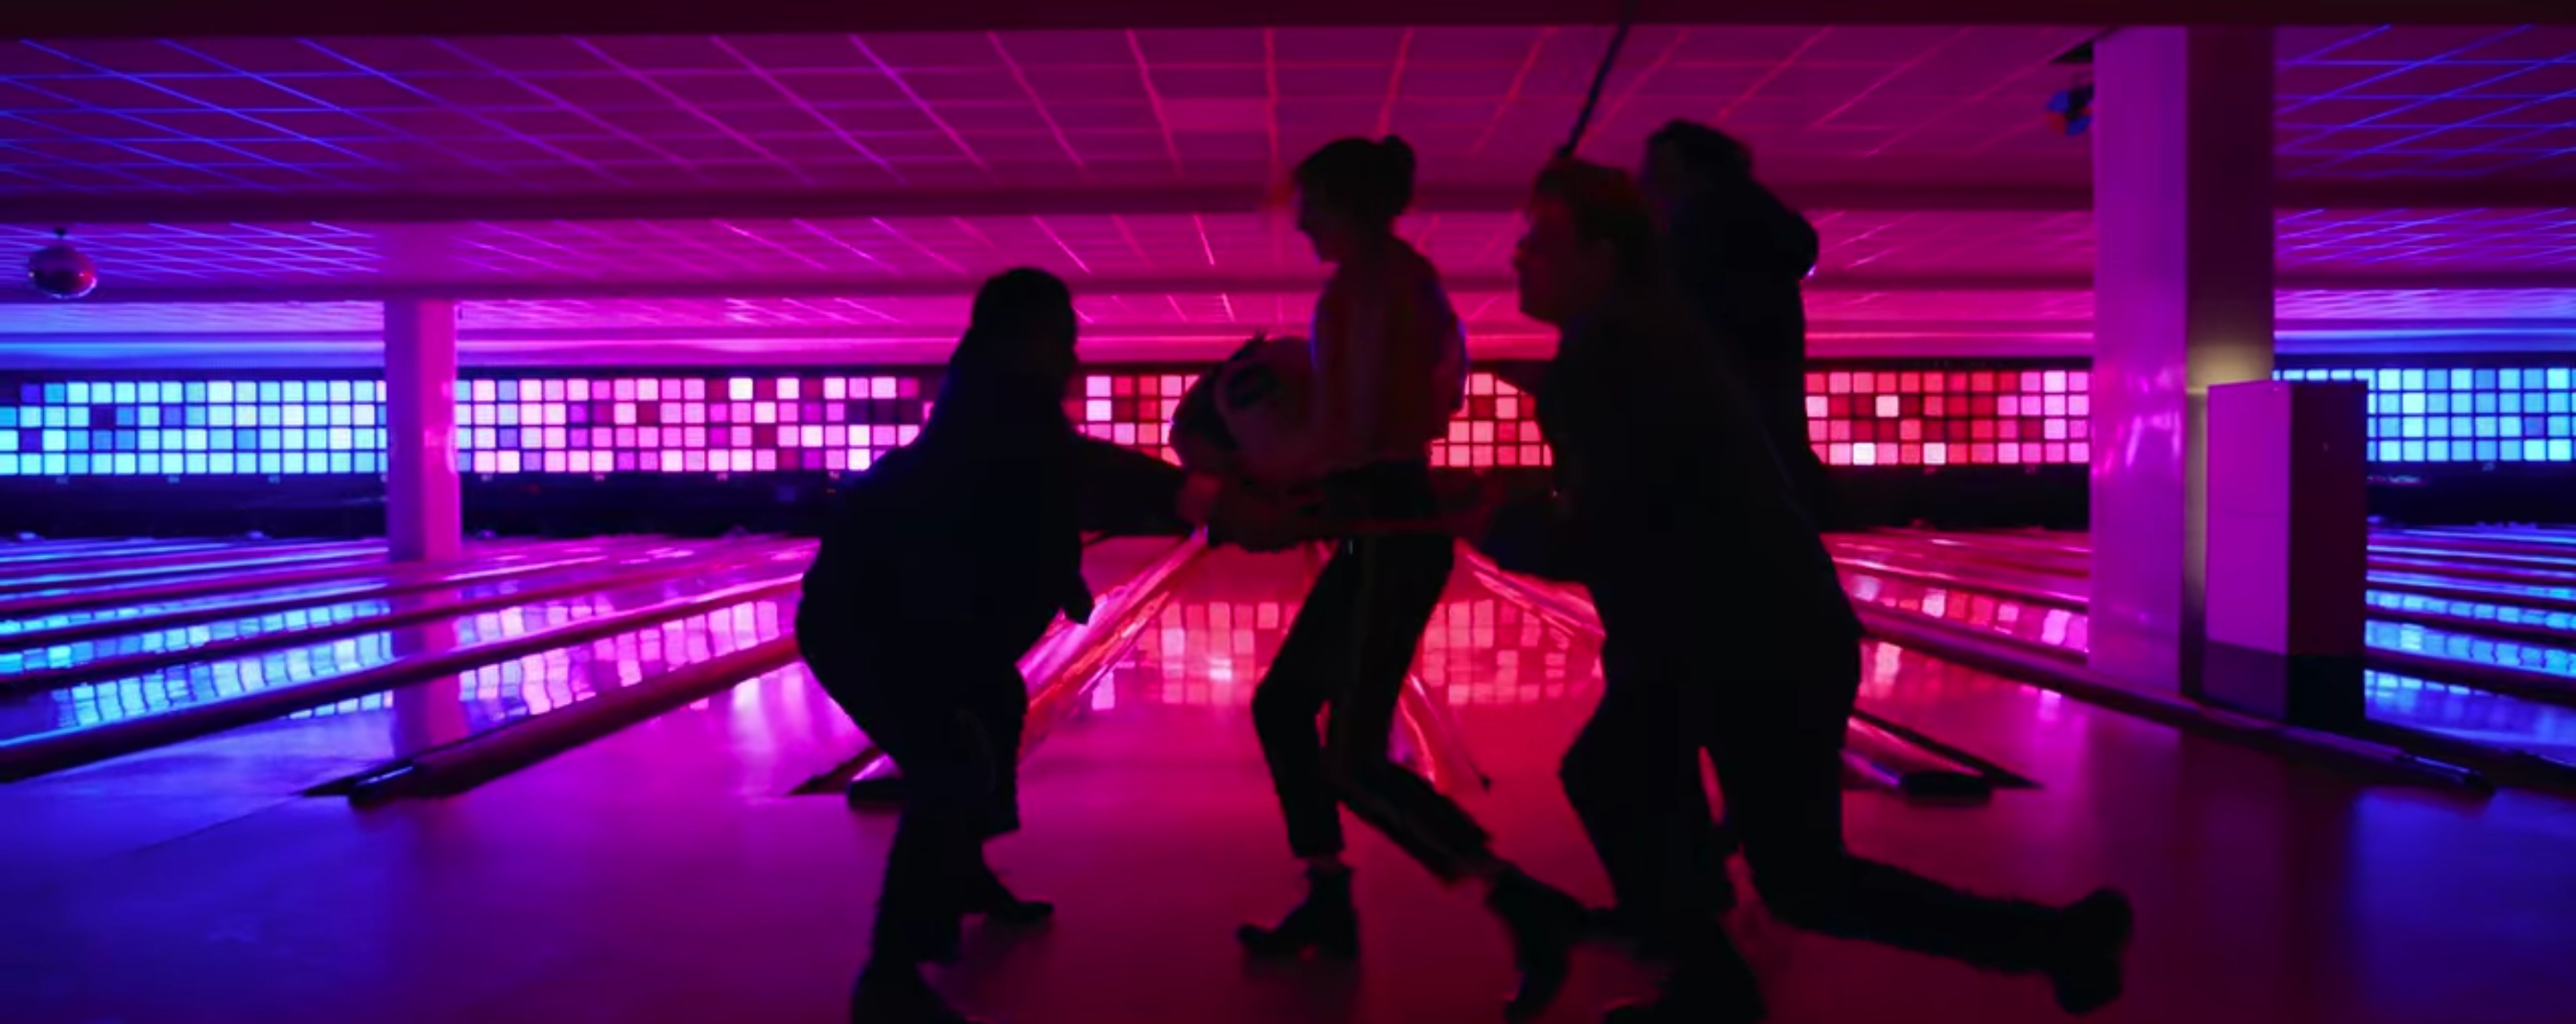 Sam in a bowling alley lit up by pink and blue squares at the end of the lanes. She is fighting off three men armed only with a child's suitcase shaped like a panda.